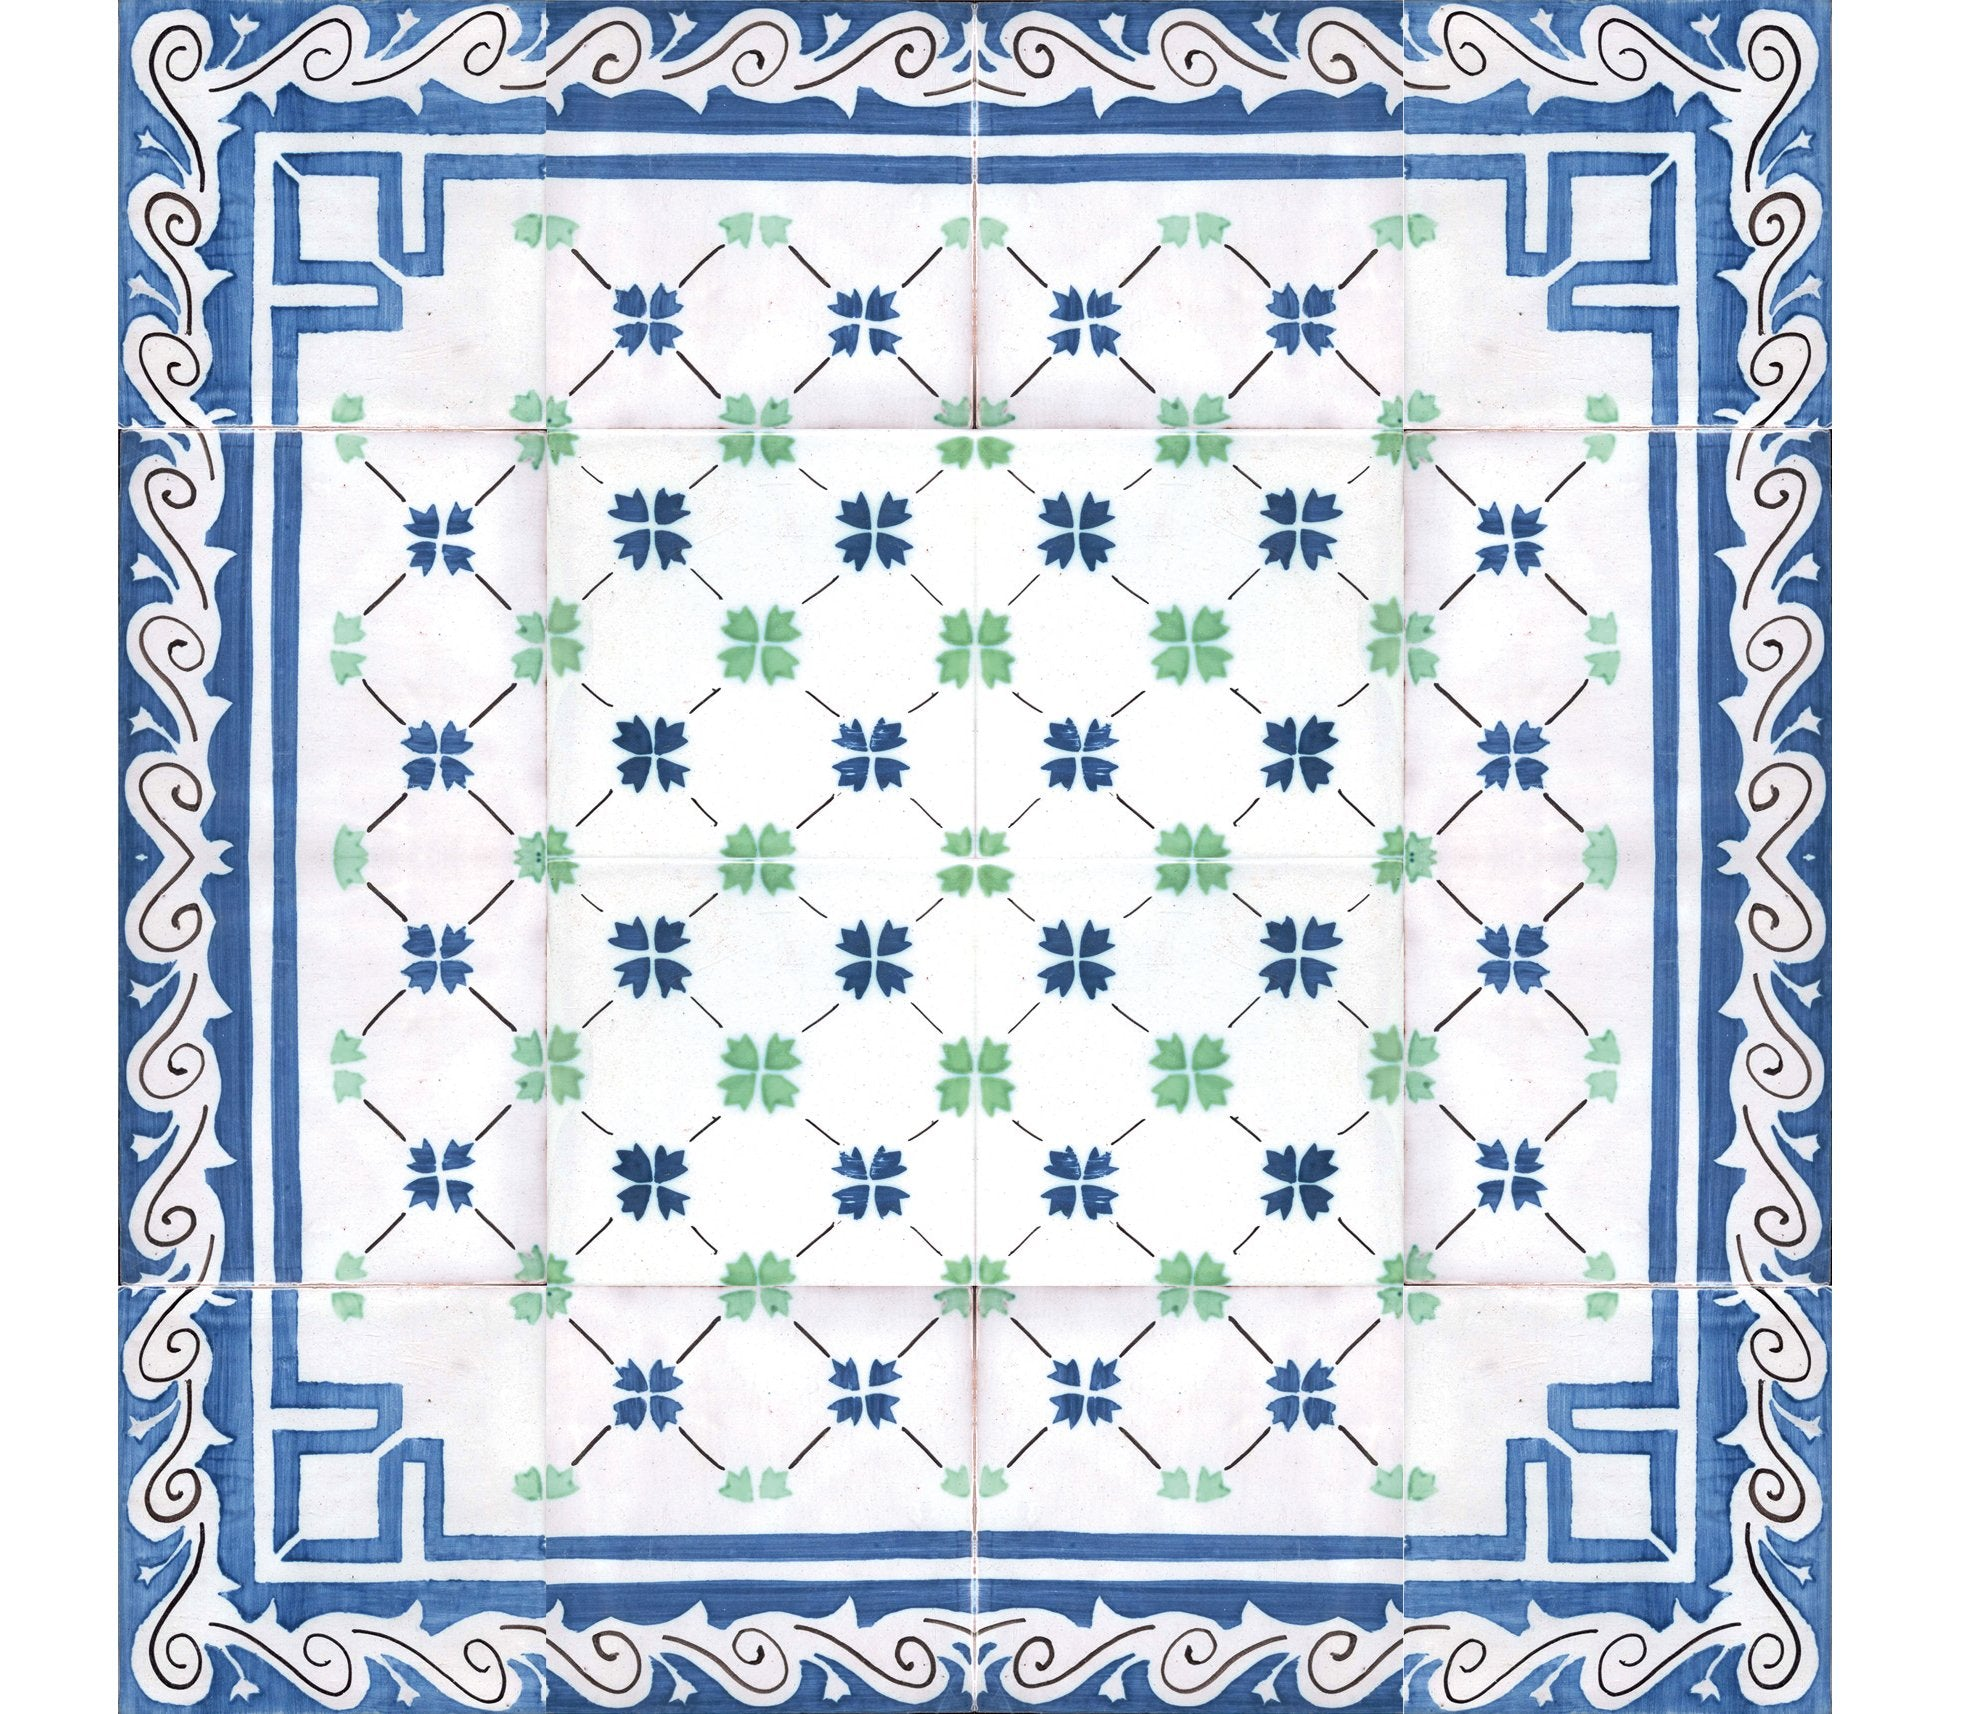 Series S Handpainted Tiles Product Image 24